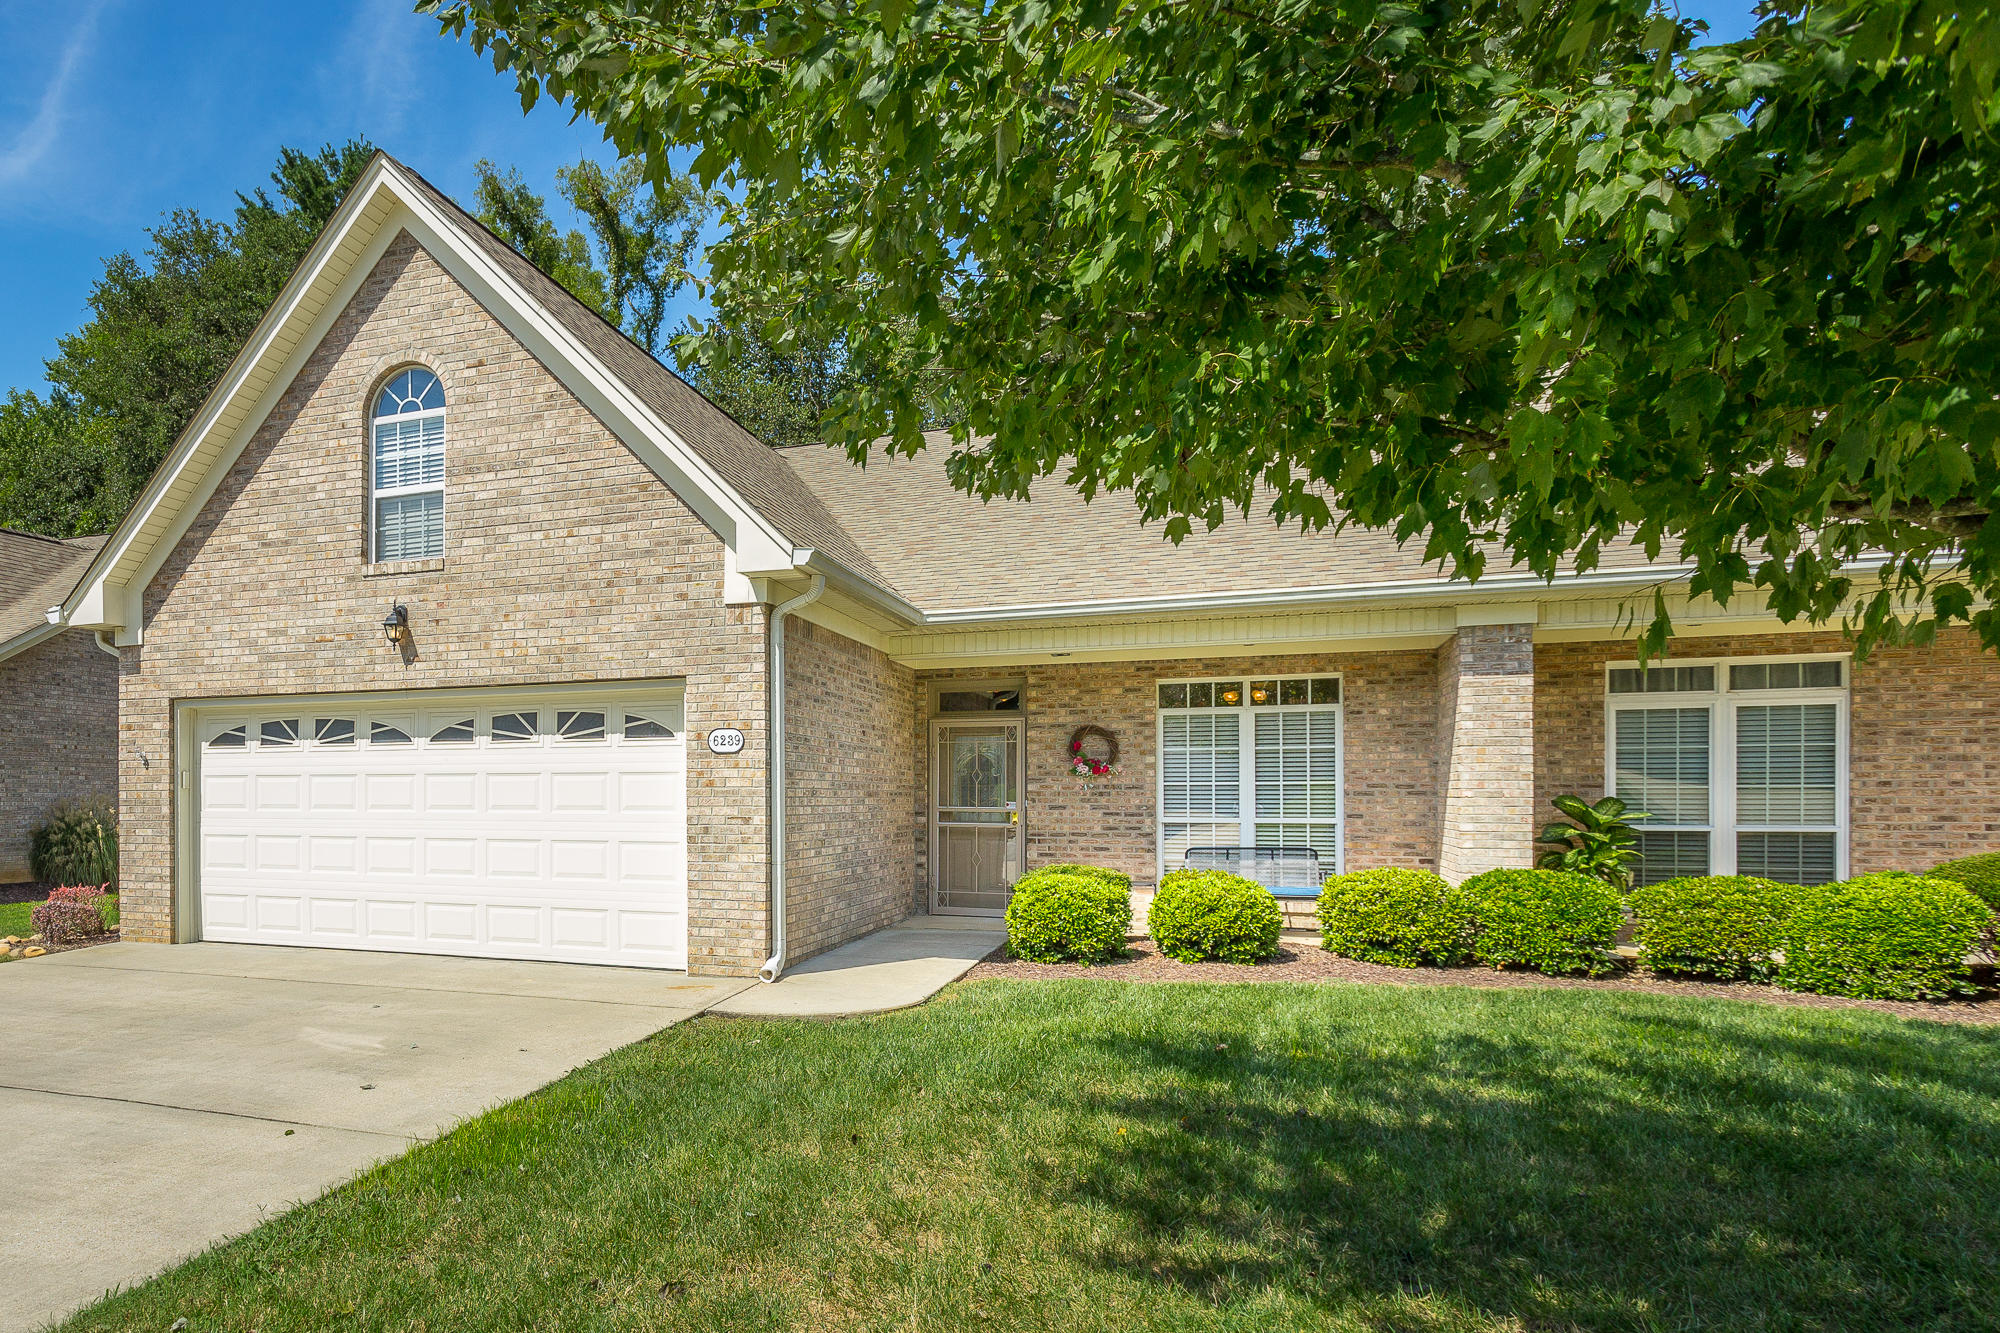 6239 Amber Brook Dr, Hixson, TN 37343